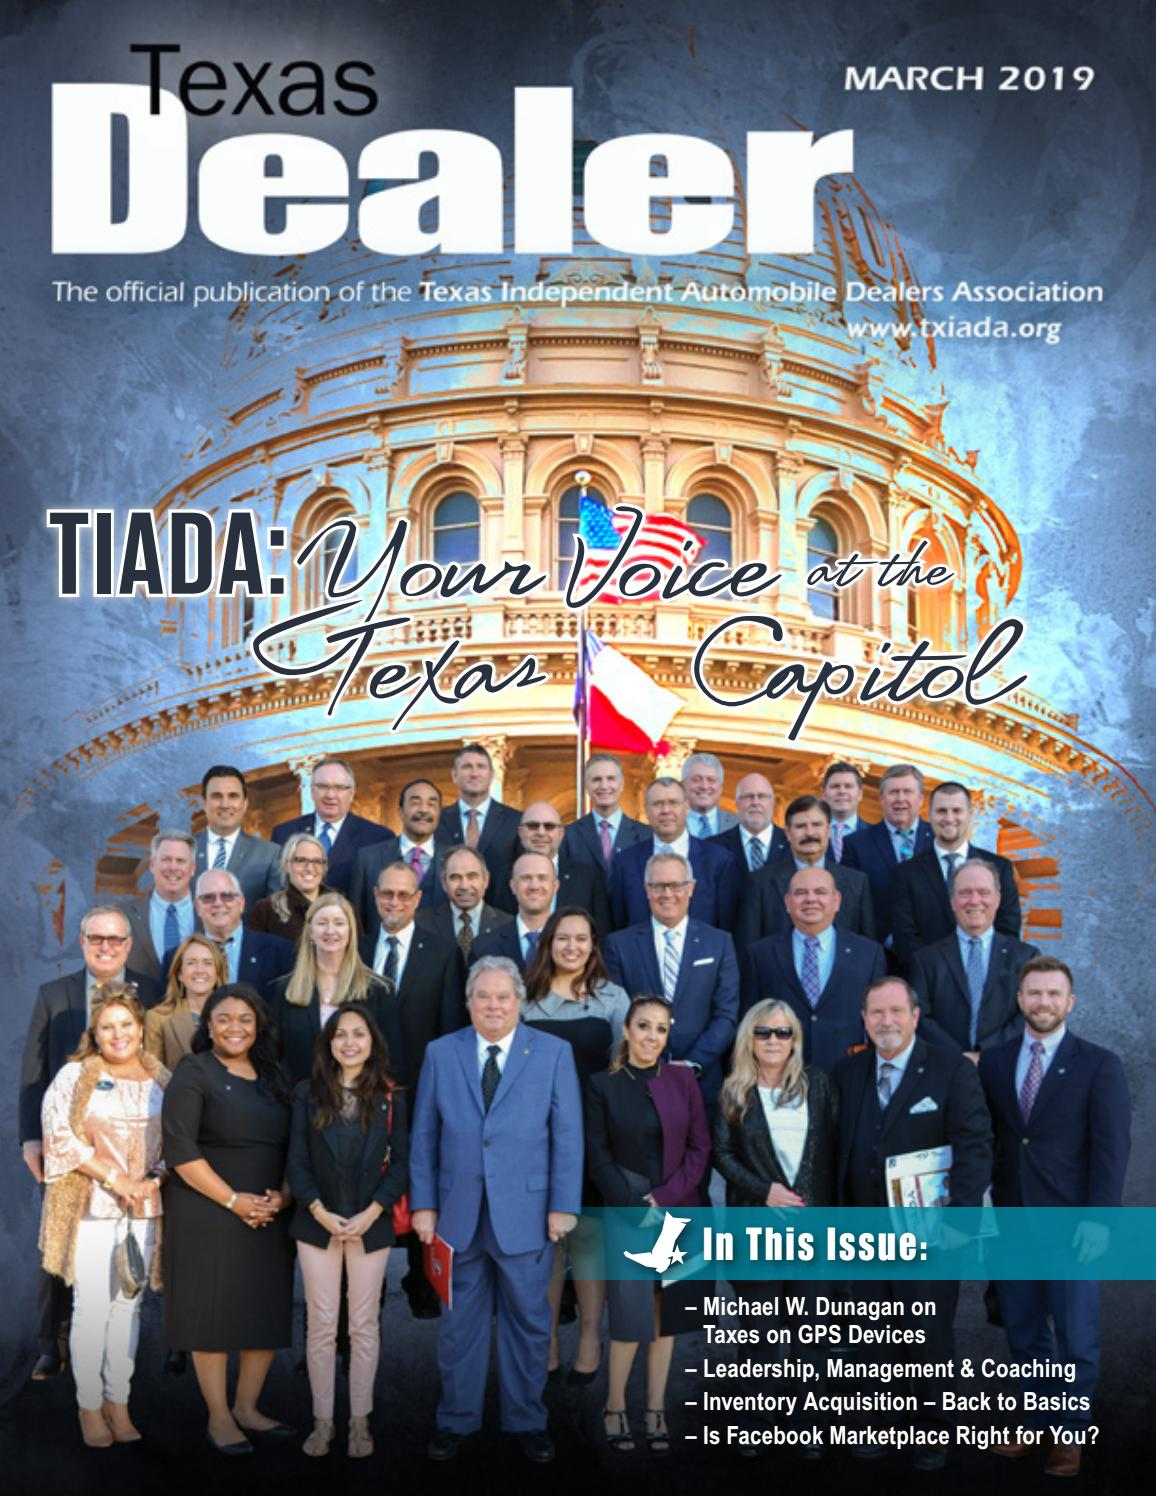 Texas Dealer March 2019 by Texas Independent Auto Dealers